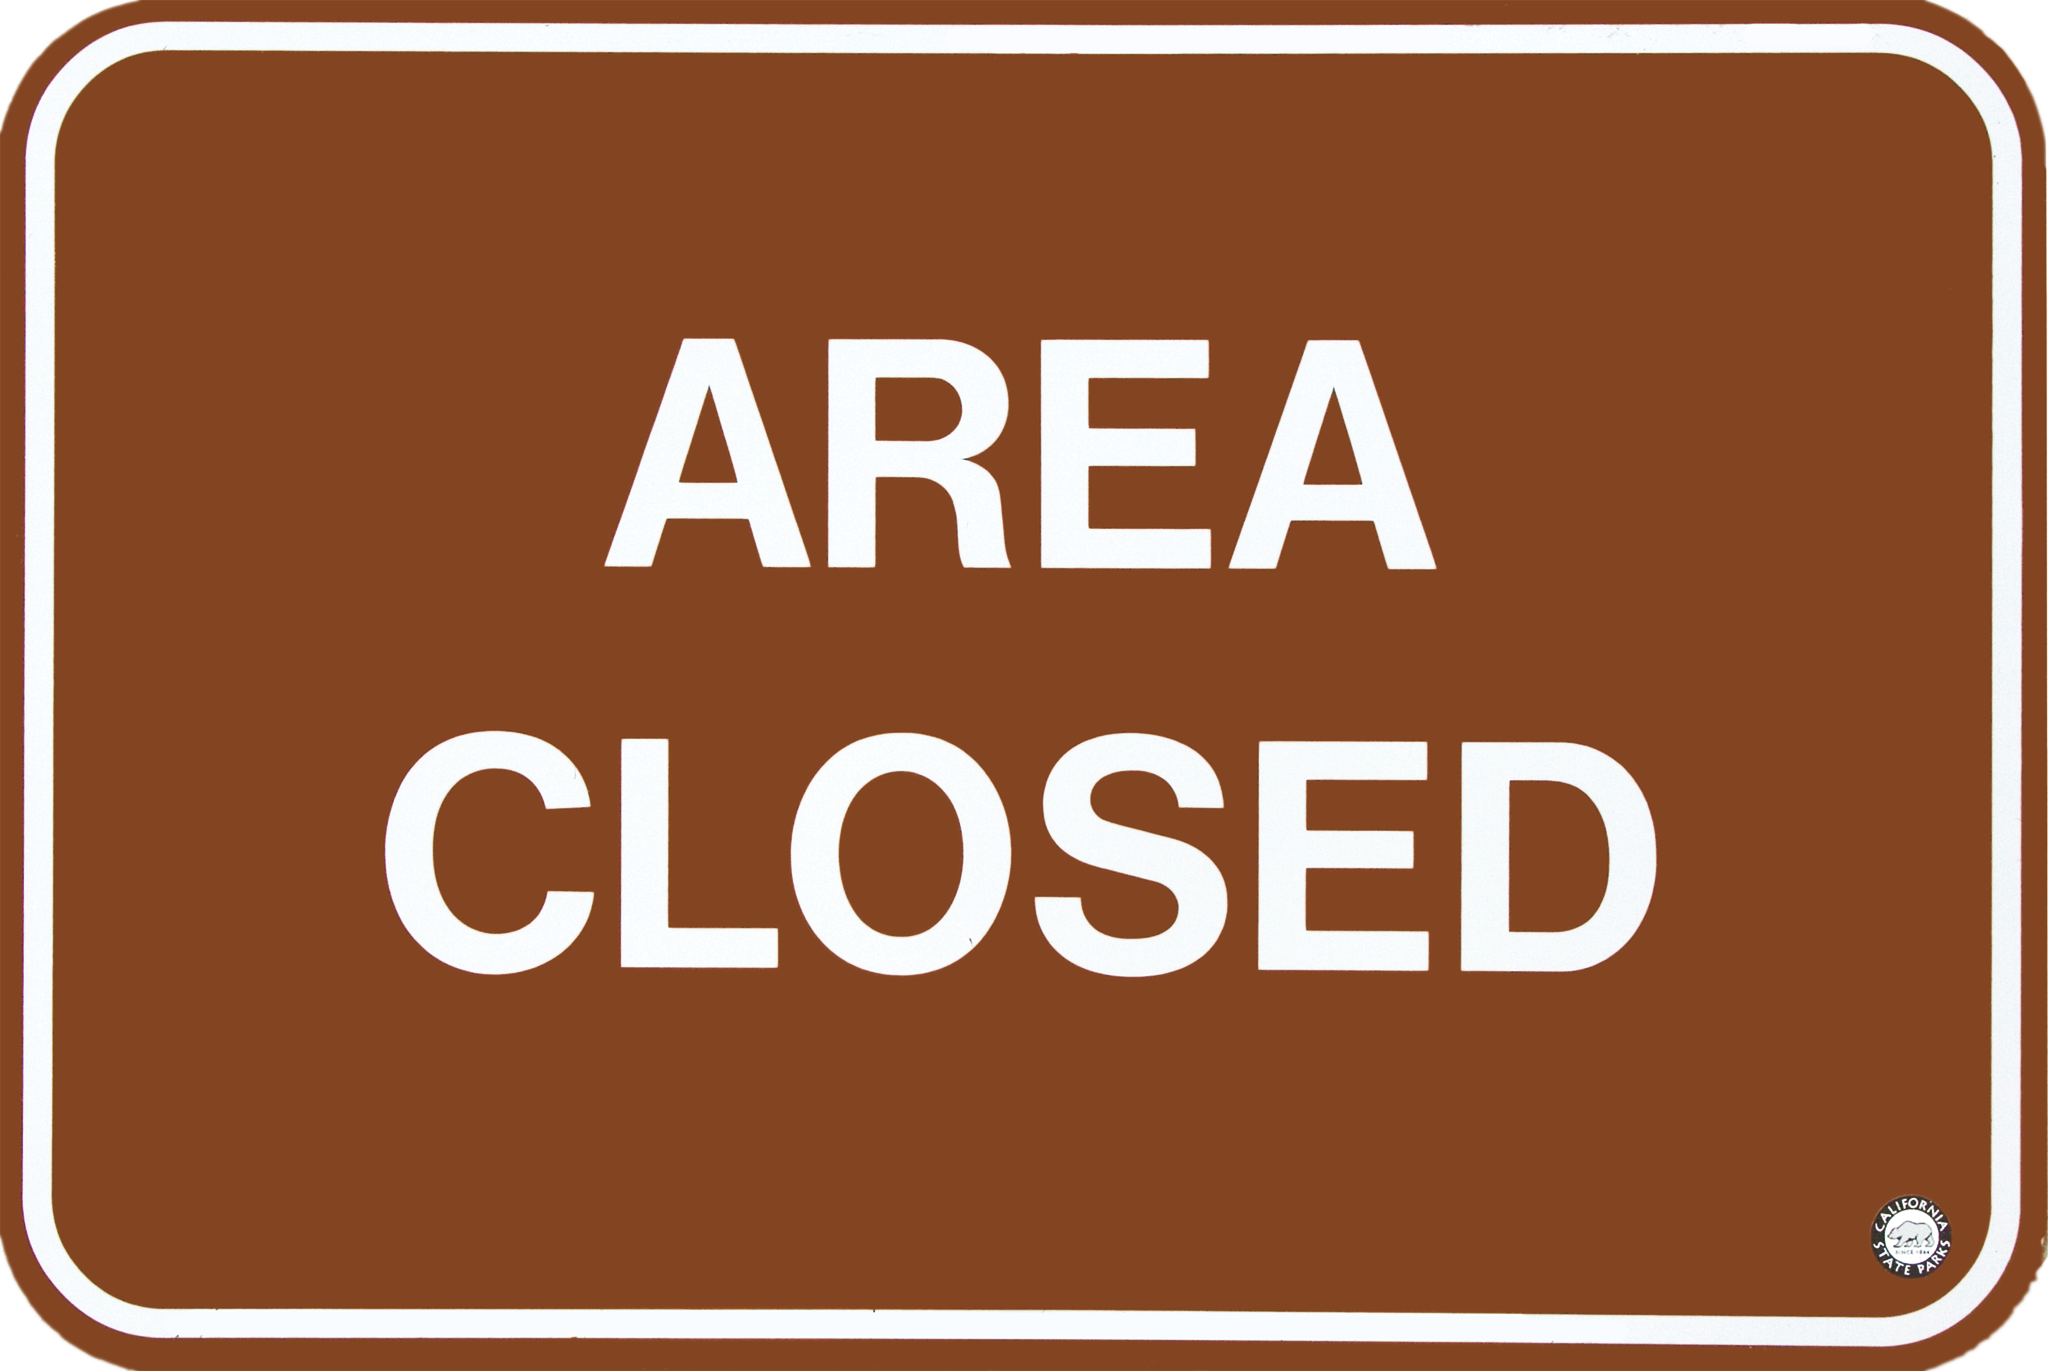 Area Closed.png